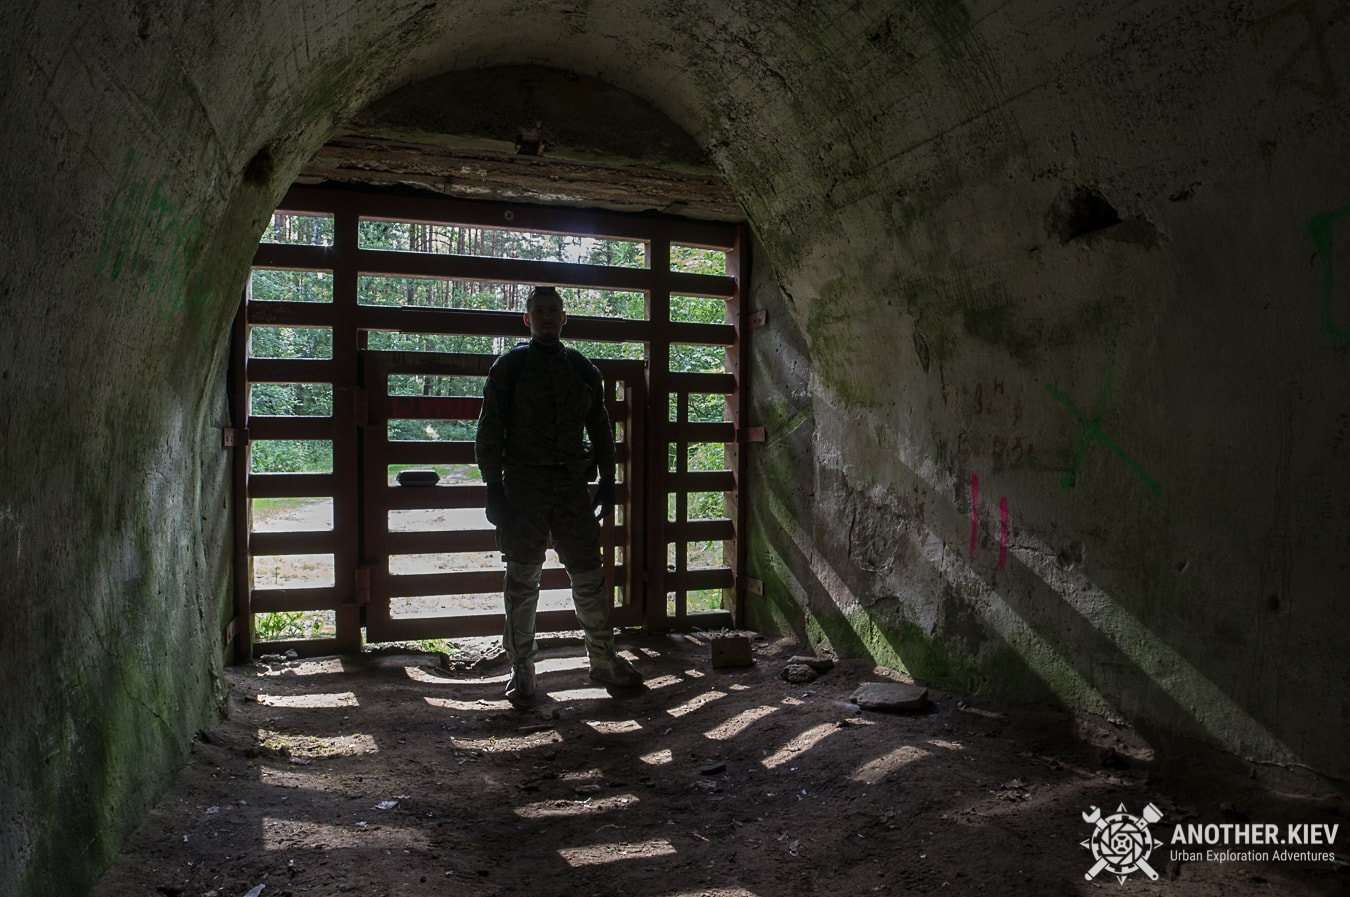 regenwurmlager-urbex-expedition-urbextour2 REGENWURMLAGER MEZERITZ URBEX EXPEDITION 2018